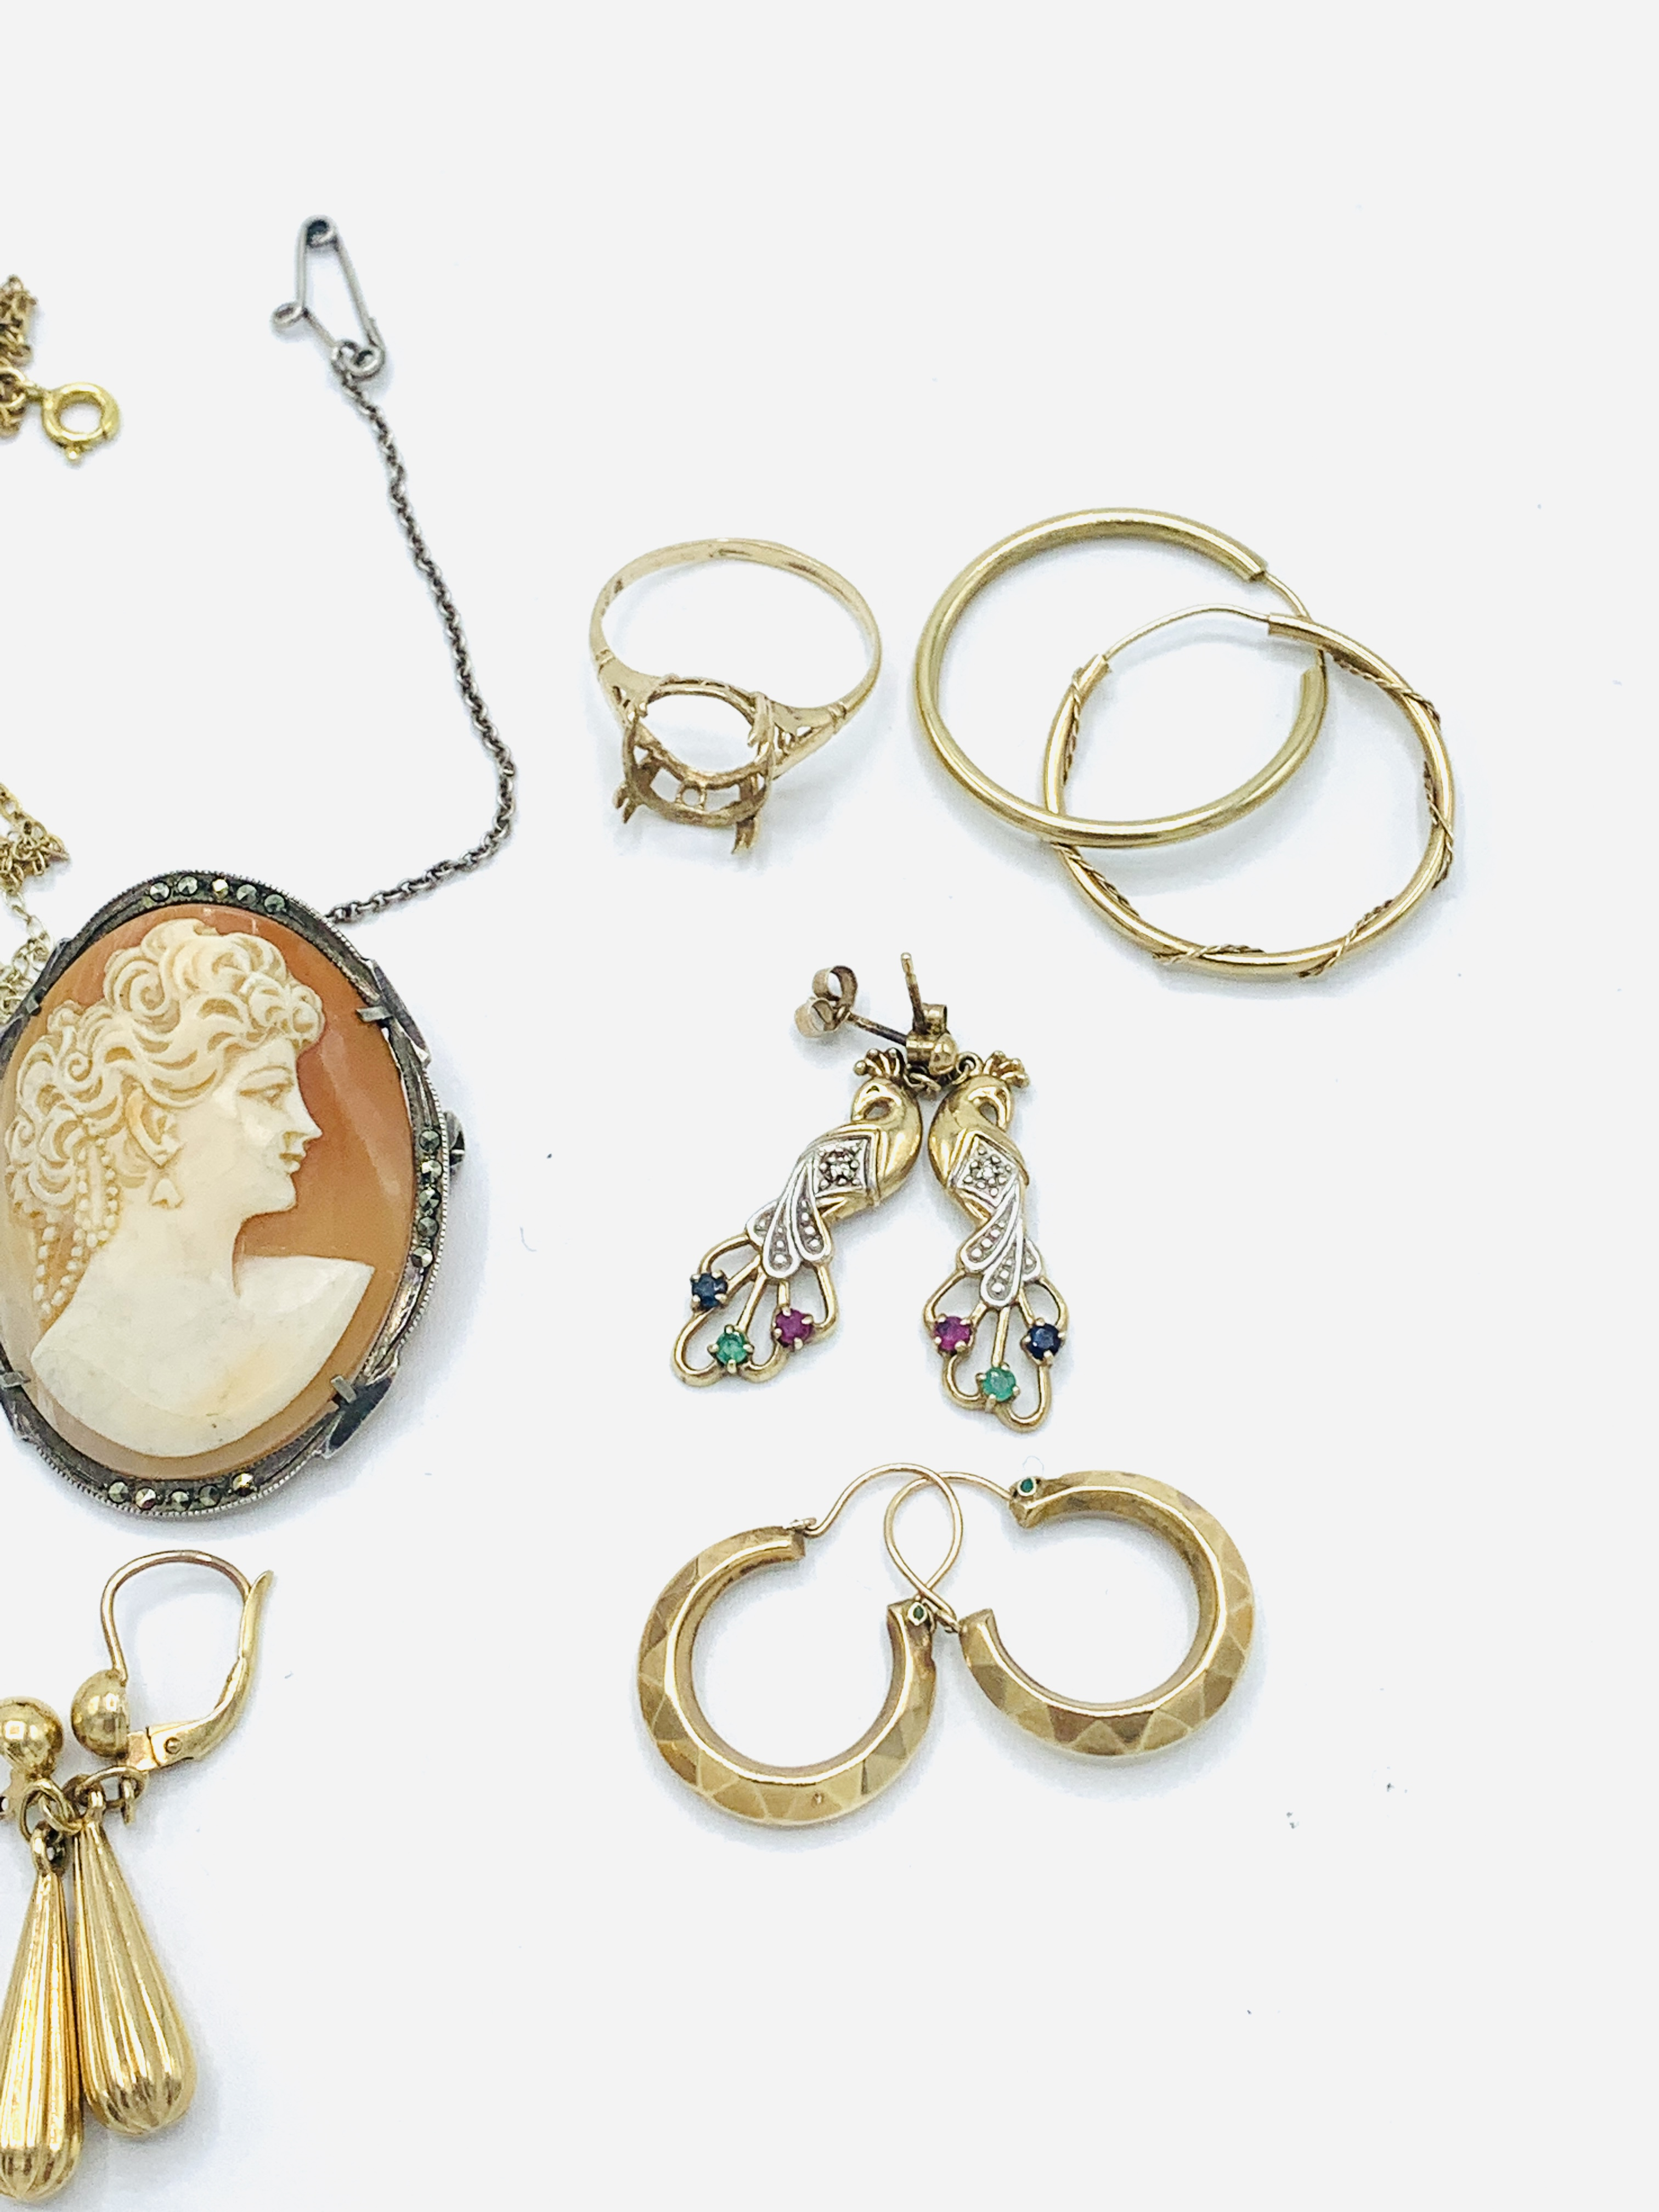 Six pairs of 9ct gold earrings; together with other jewellery - Image 3 of 5